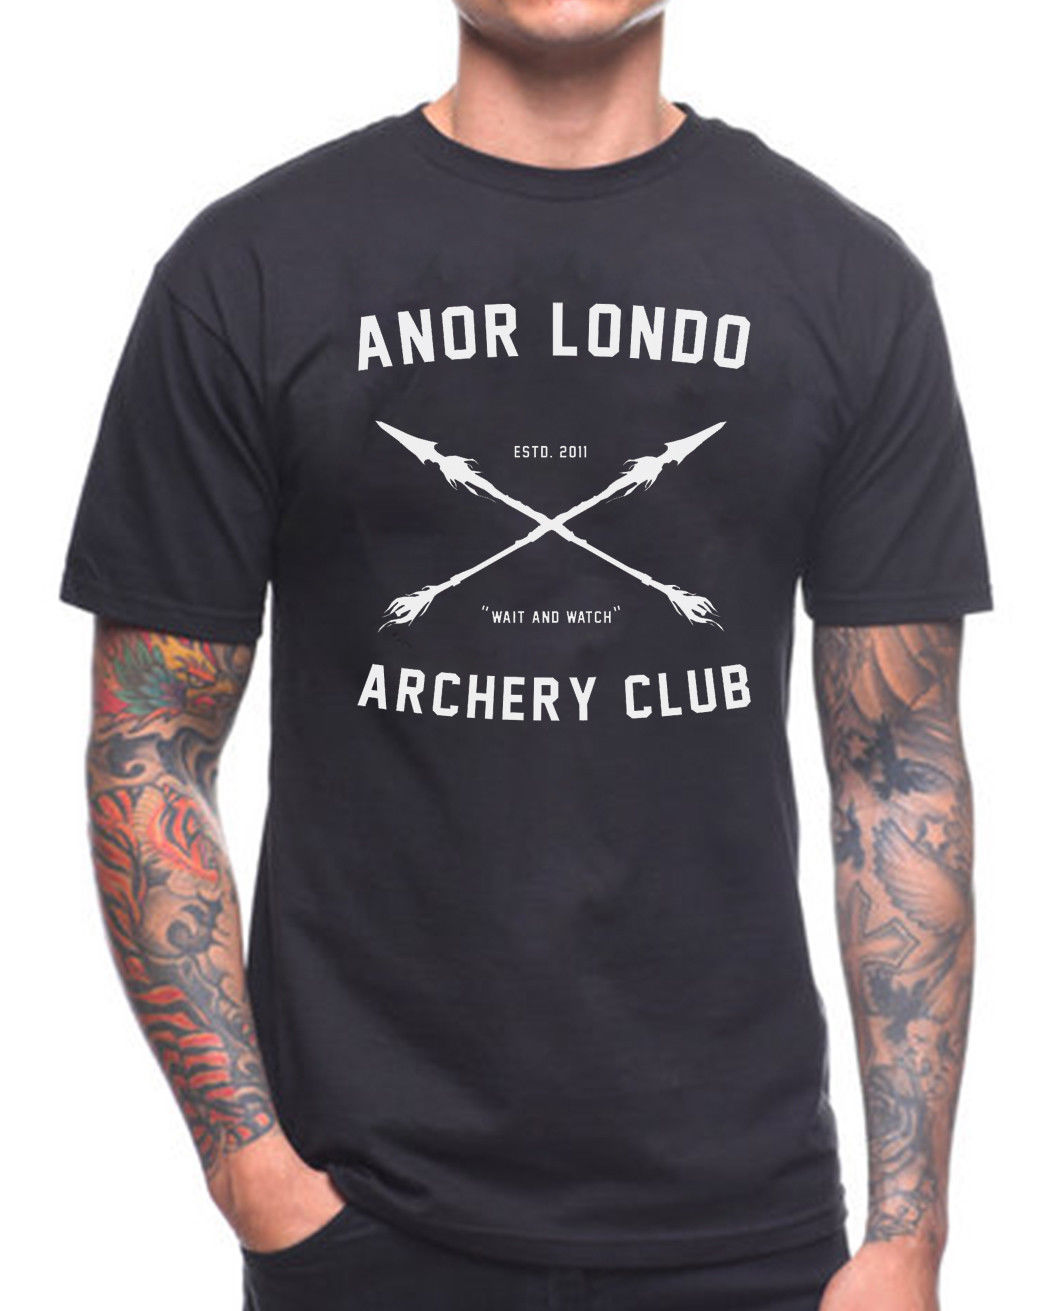 Anor Londo Archery Club T Shirt Dark Souls Xbox Game Gamer Birthday Present Cool Casual Pride T Shirt Men Unisex New image